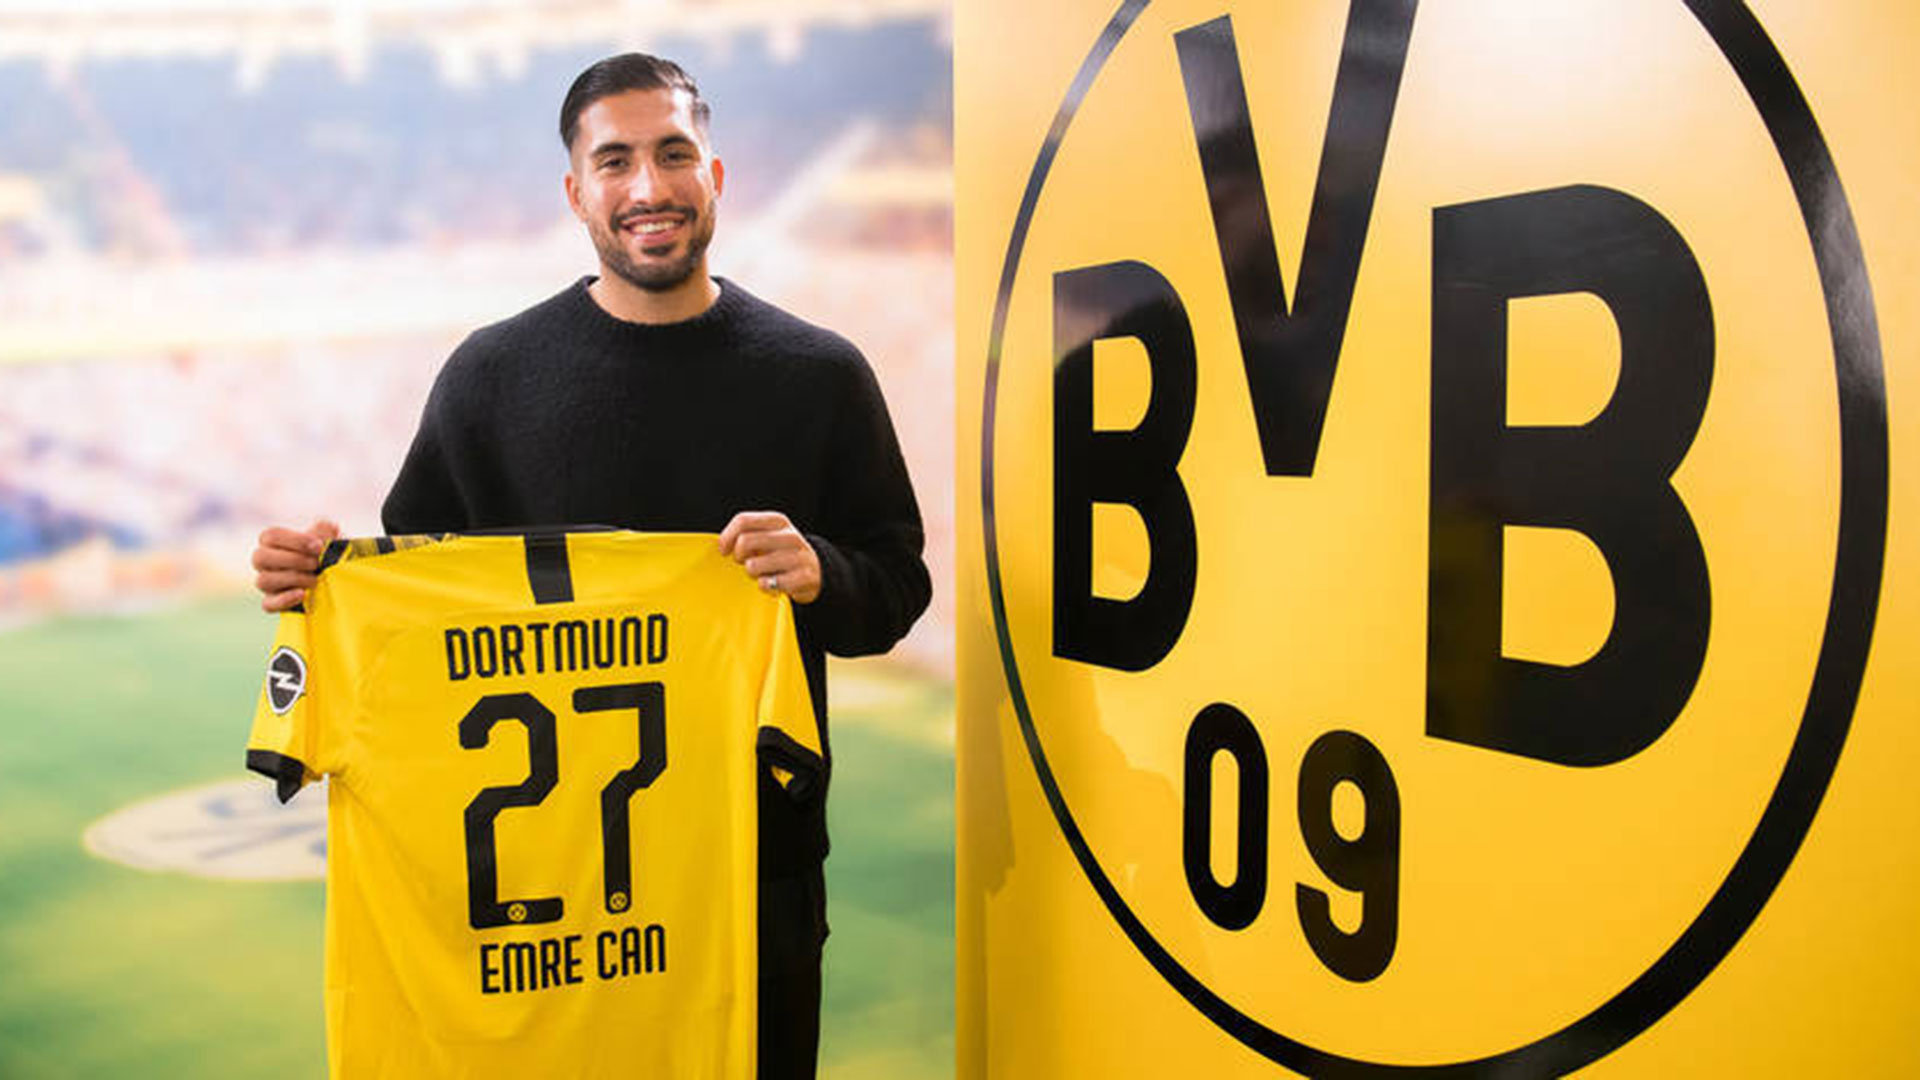 Image result for Emre can dortmund""